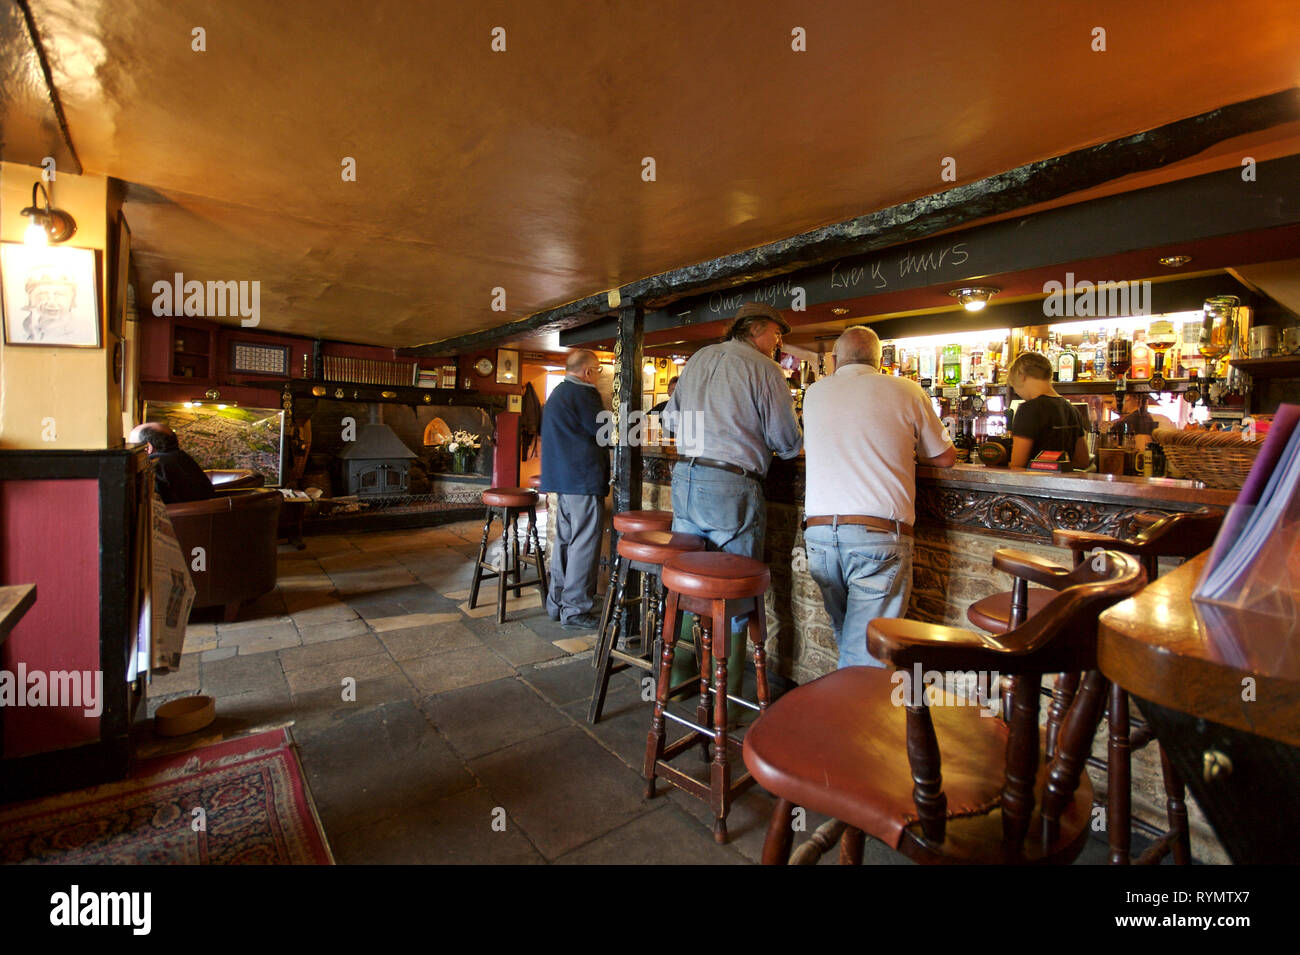 English village pub interior with customers at the bar - Stock Image